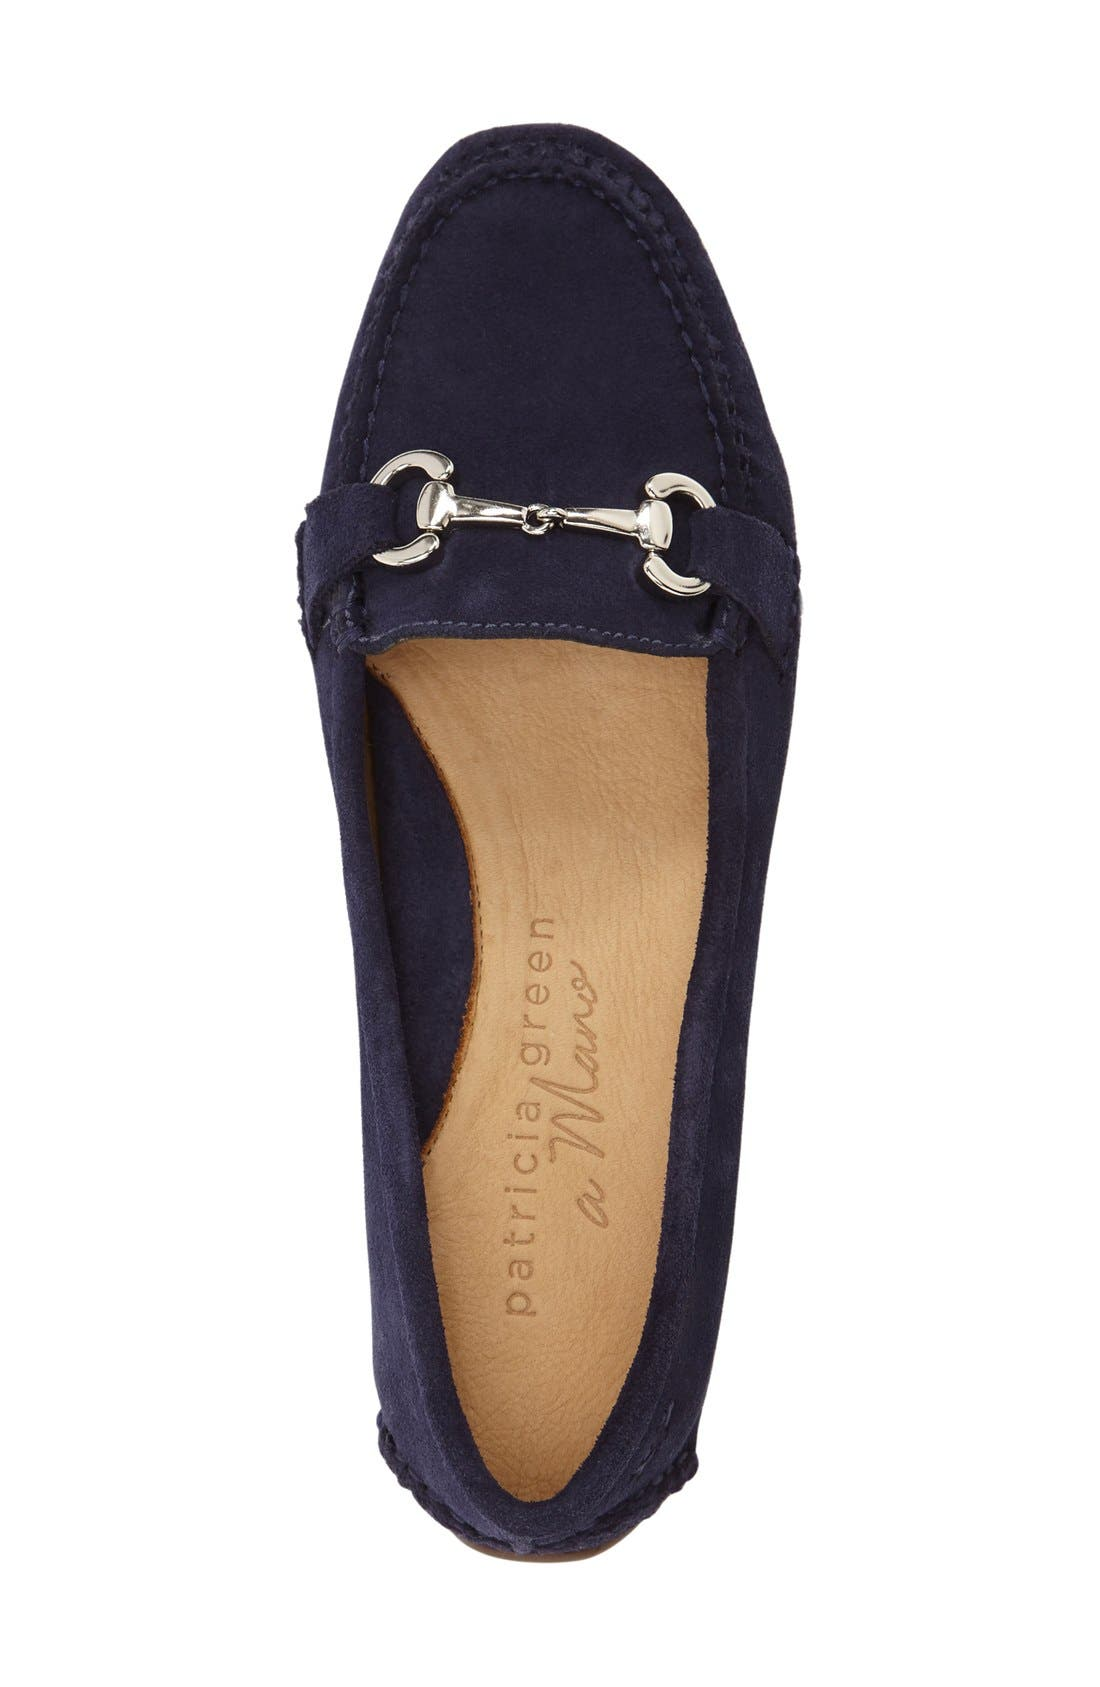 'Carrie' Loafer,                             Alternate thumbnail 3, color,                             Navy Suede